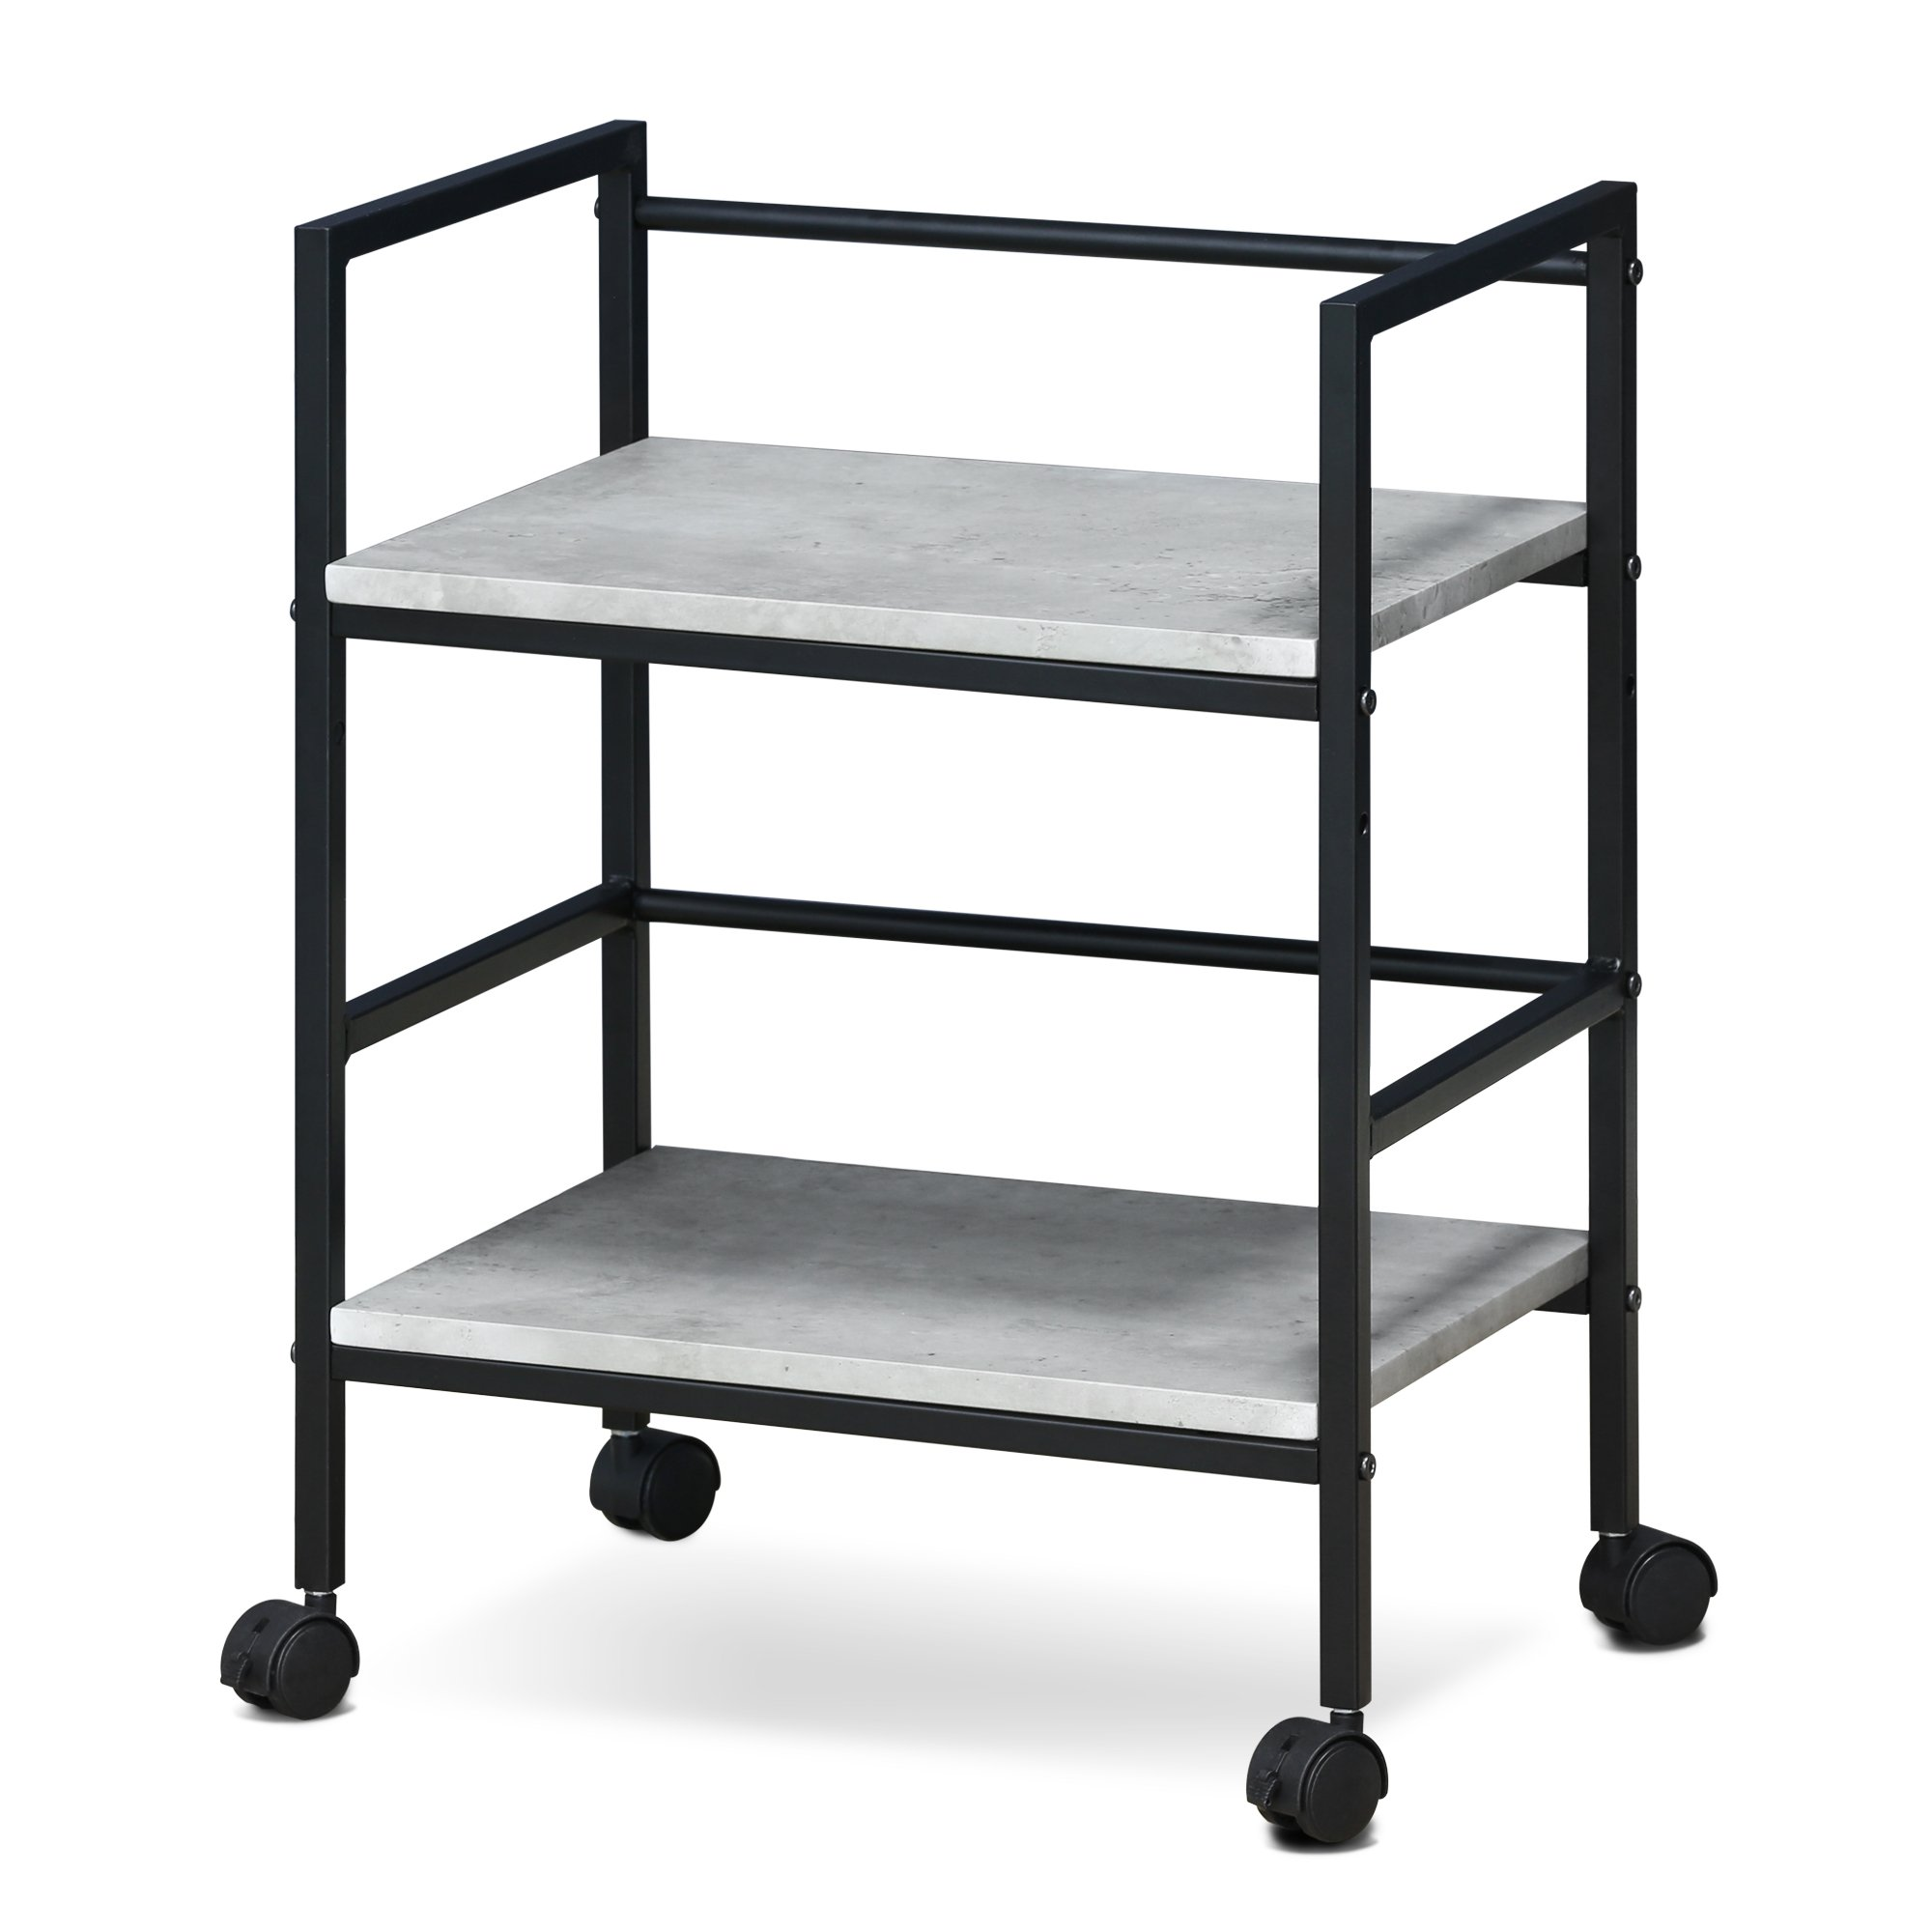 Furinno FM4560WSW Modern Lifestyle Storage Cart with Casters, Stone by Furinno